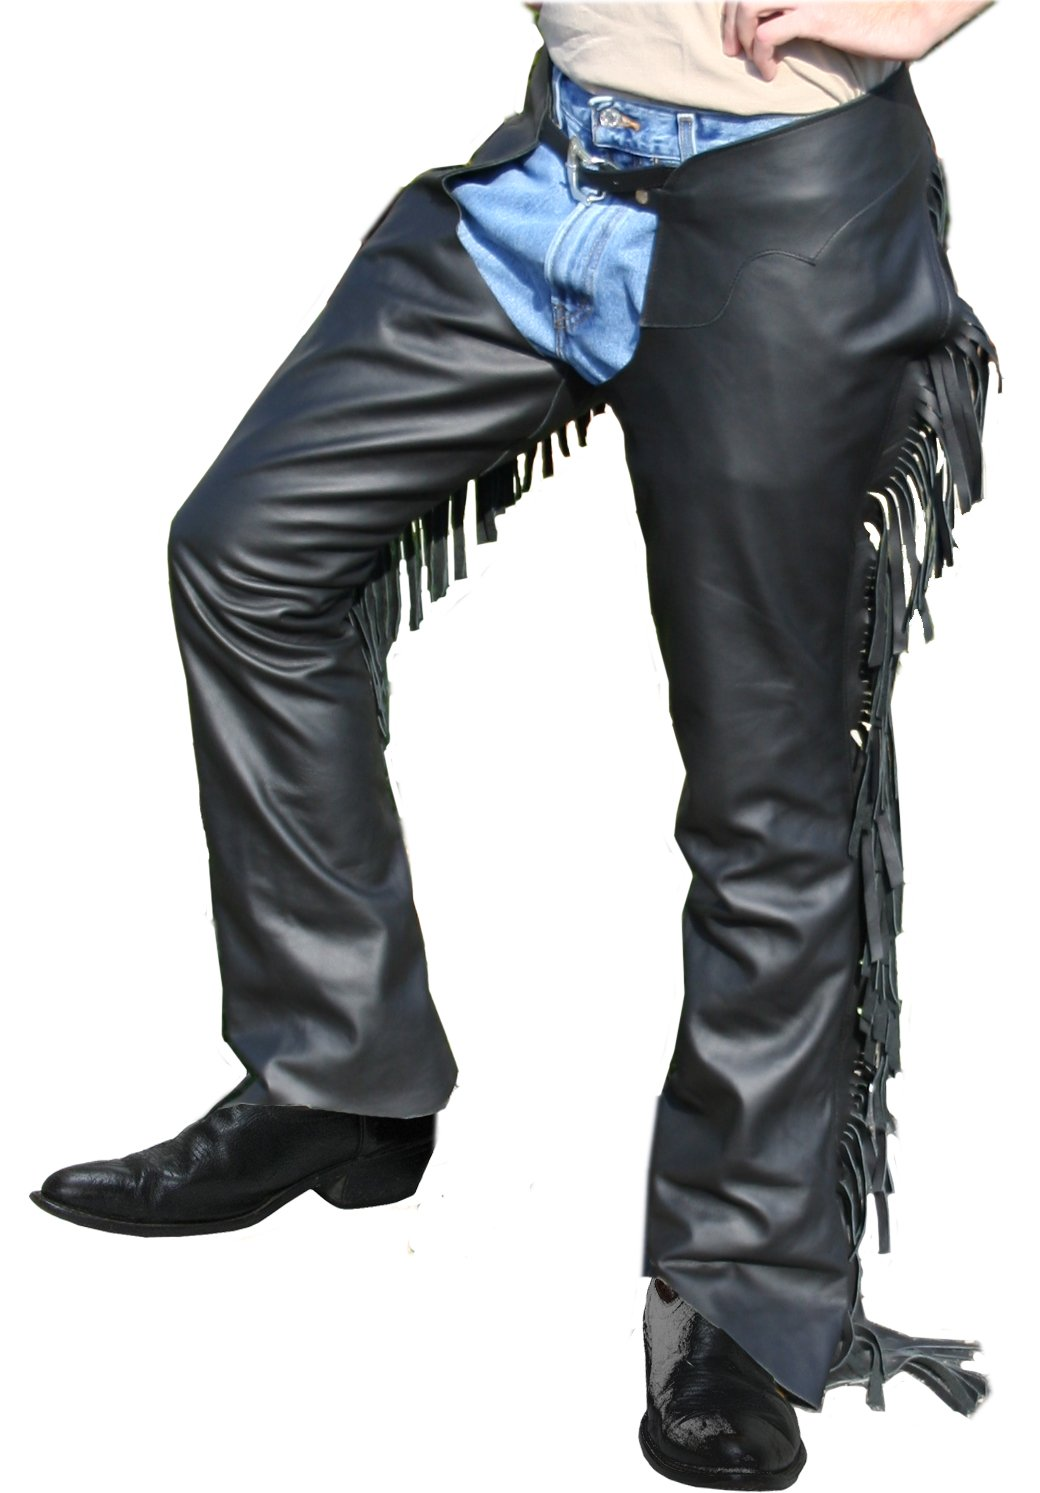 Tahoe Tack Smooth Leather Show Chaps with Fringes USA Leather- Black Small at Wholesale Price